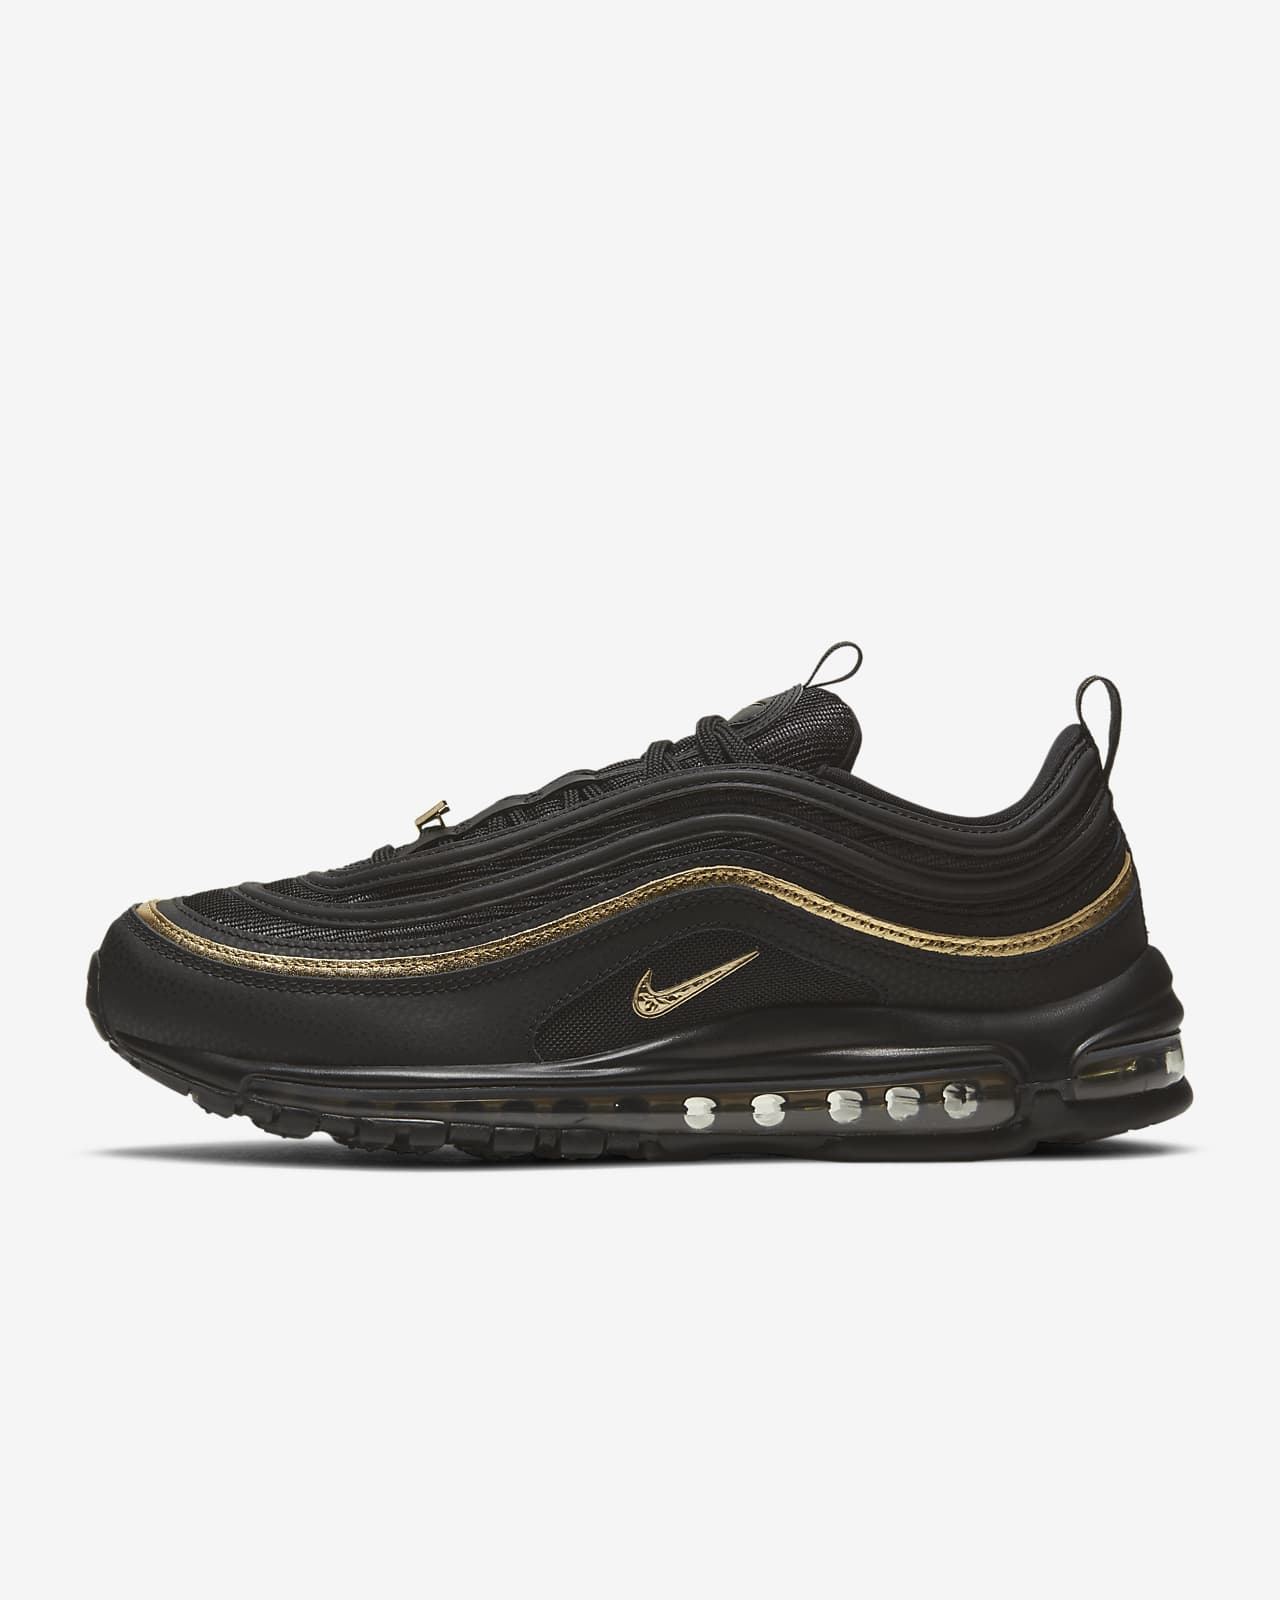 Soldes > chaussures air max 97 > en stock